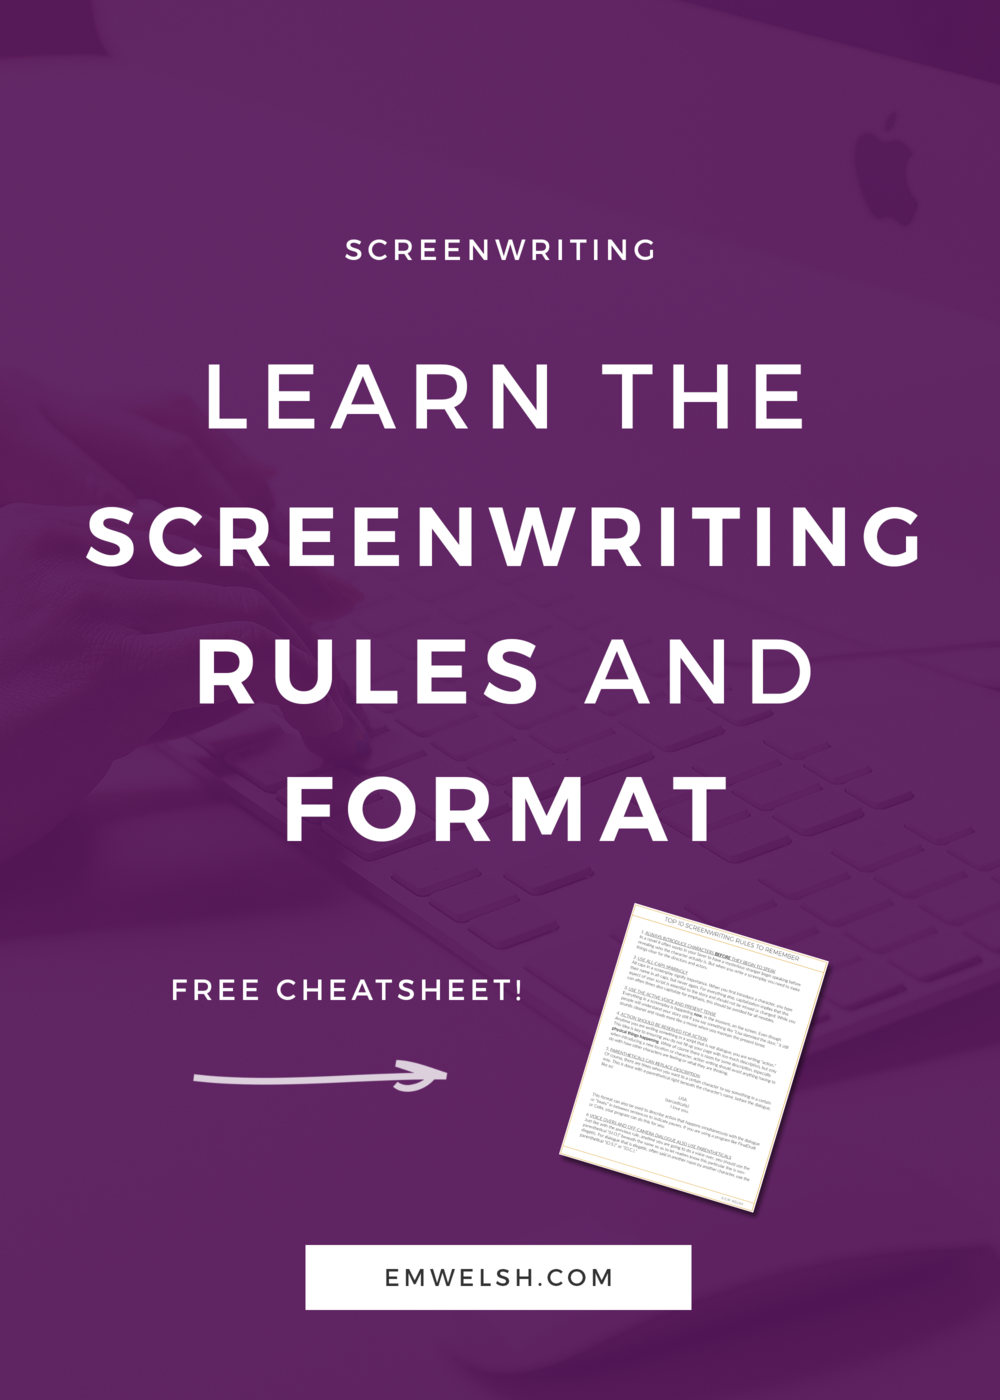 how to learn the screenwriting format and rules e m welsh